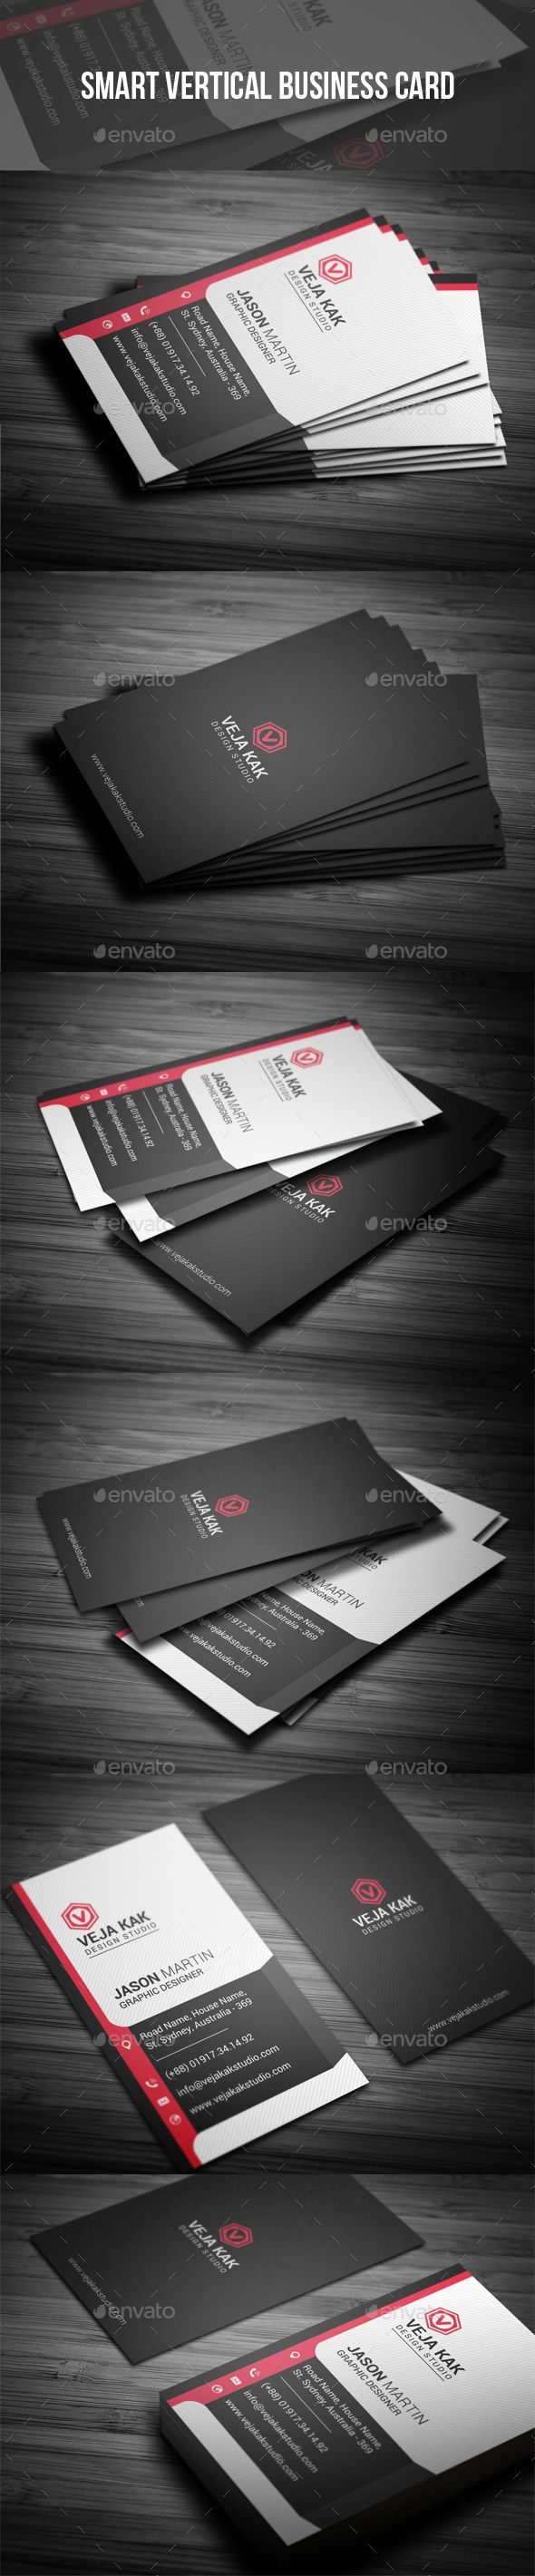 Smart Vertical Business Card - Creative Business Cards Download ...